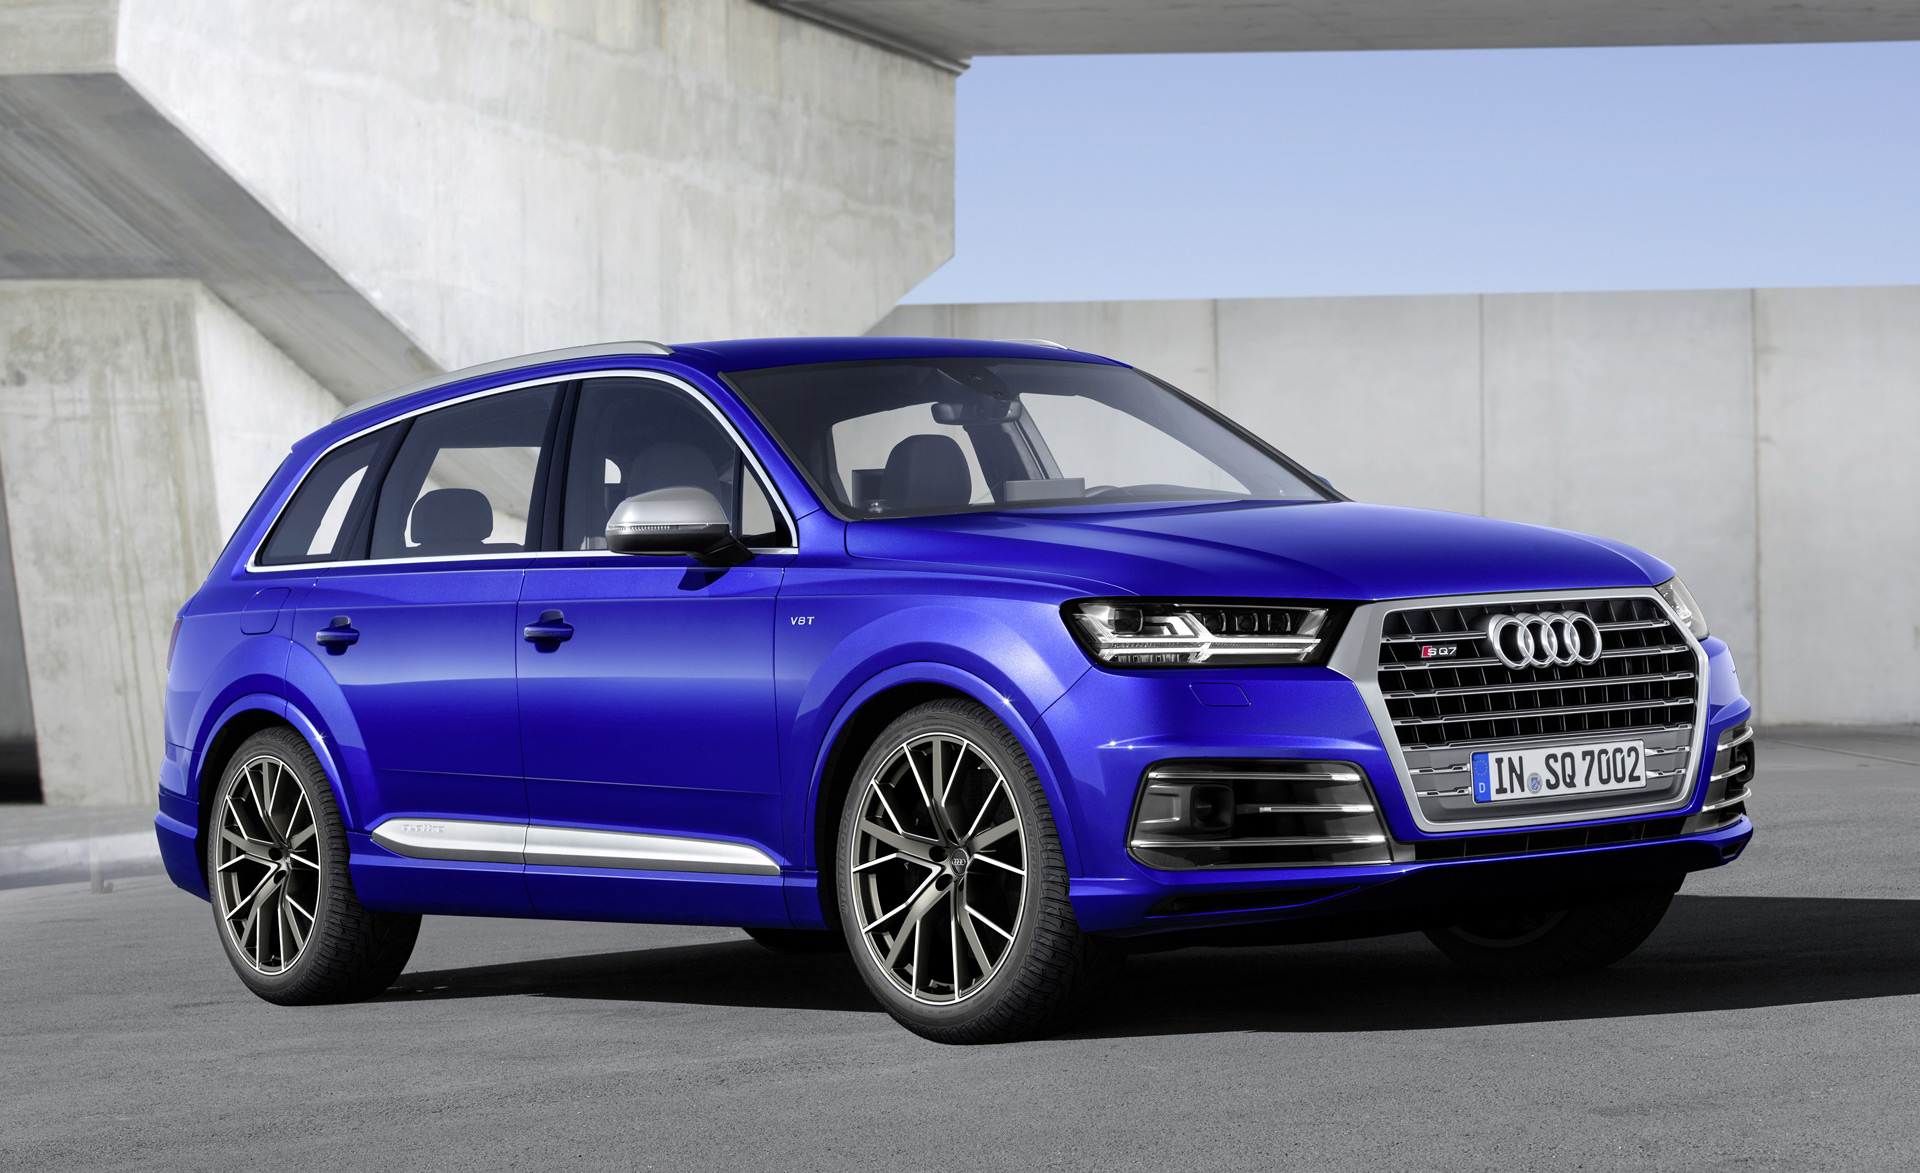 2018 Audi SQ7 TDI: Specs, Design, Price >> New Diesel Audi Sq7 Electric Turbo 48 Volt Electrics Aid Efficiency